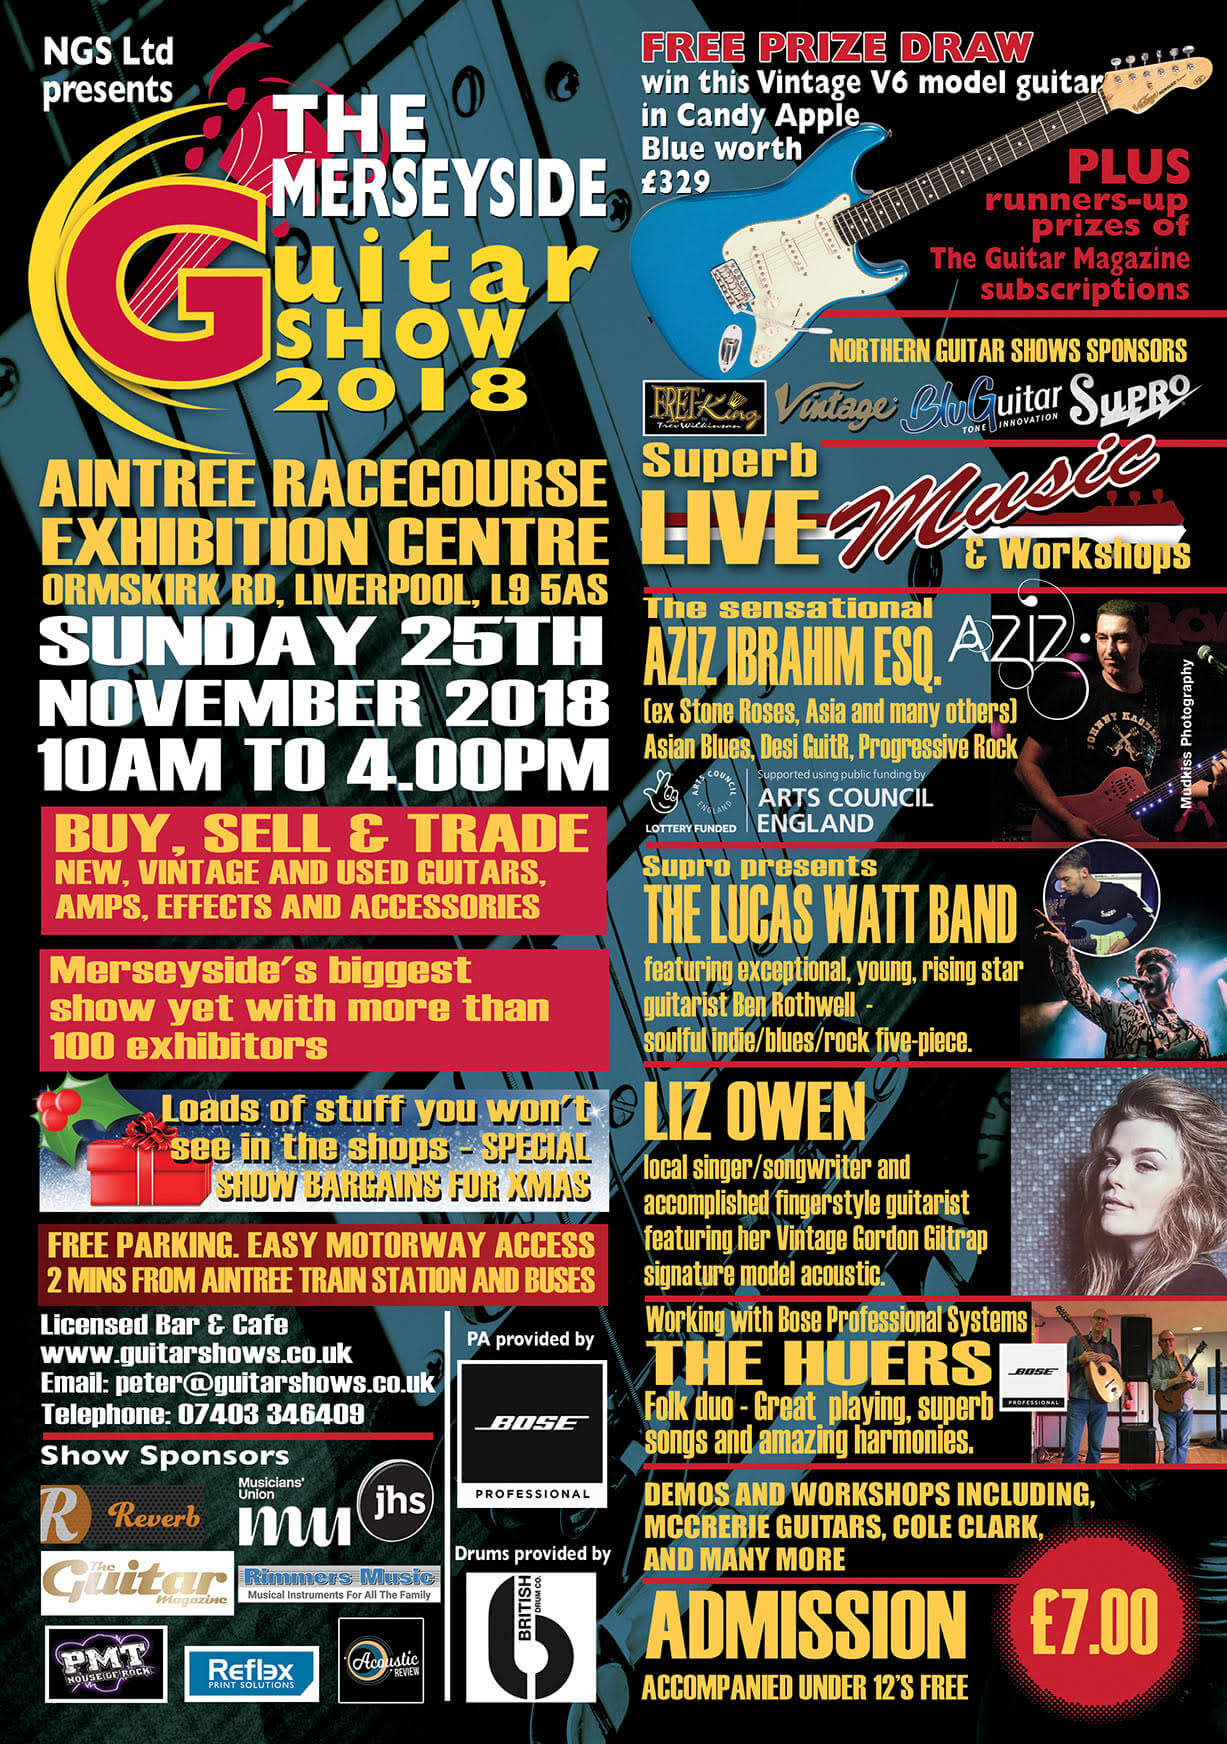 The Merseyside Guitar Show returns to Aintree Racecourse for November 2018